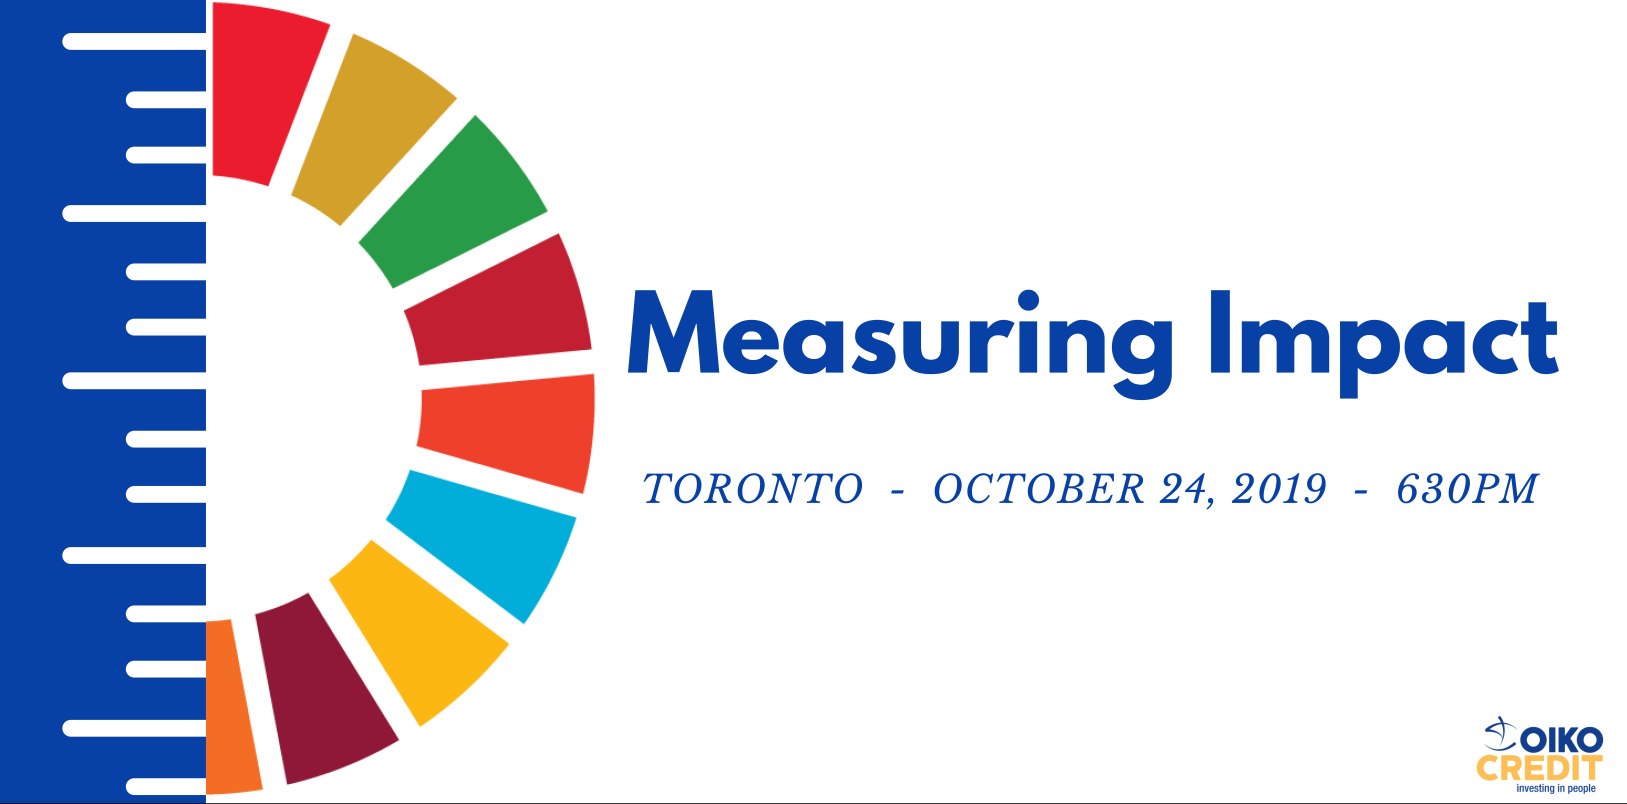 Measuring Impact event 2019